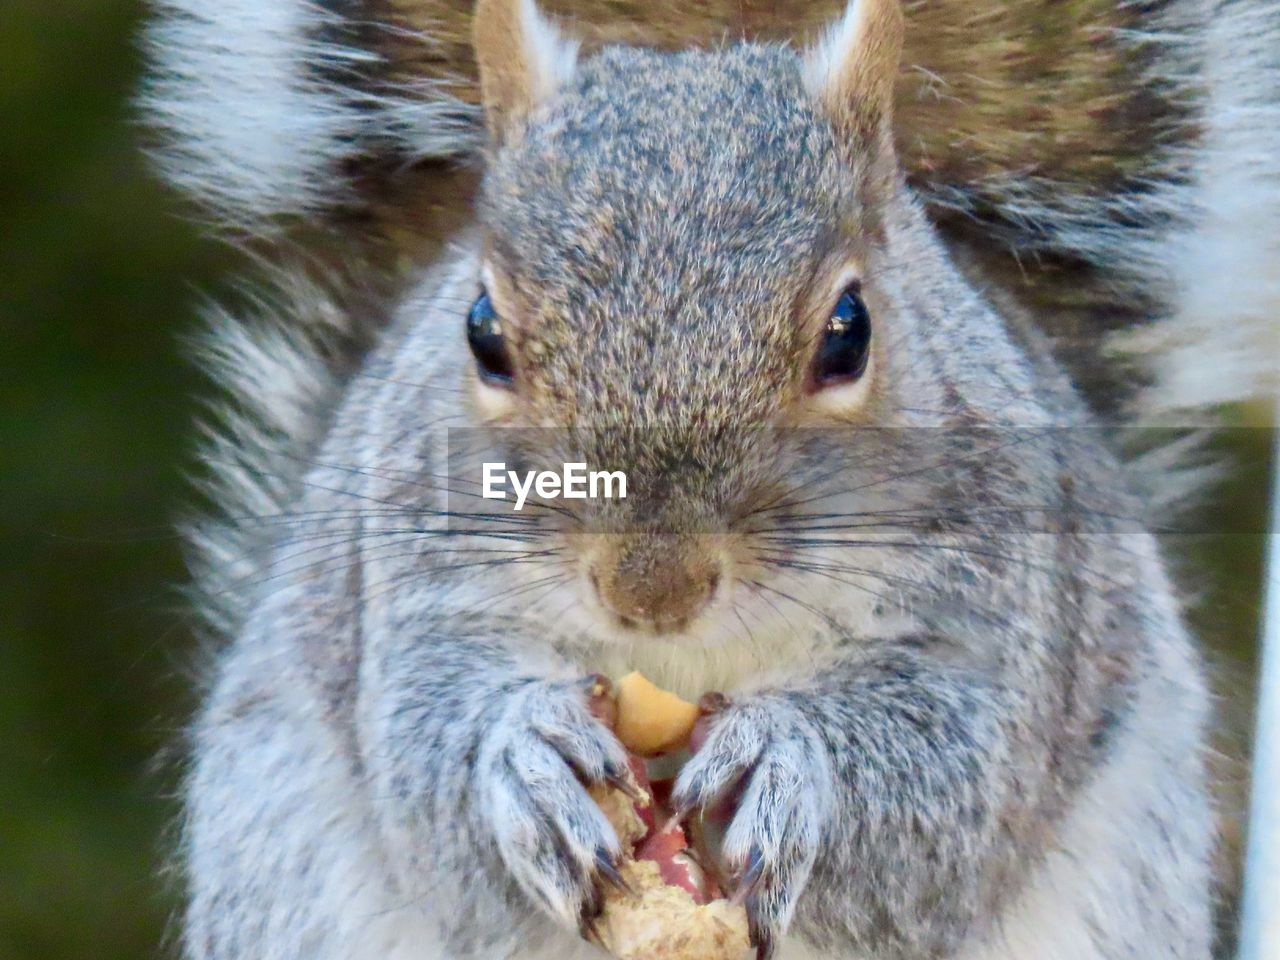 animal themes, animal, animal wildlife, one animal, rodent, close-up, animals in the wild, mammal, squirrel, vertebrate, focus on foreground, no people, portrait, eating, day, looking at camera, food and drink, holding, food, whisker, animal head, herbivorous